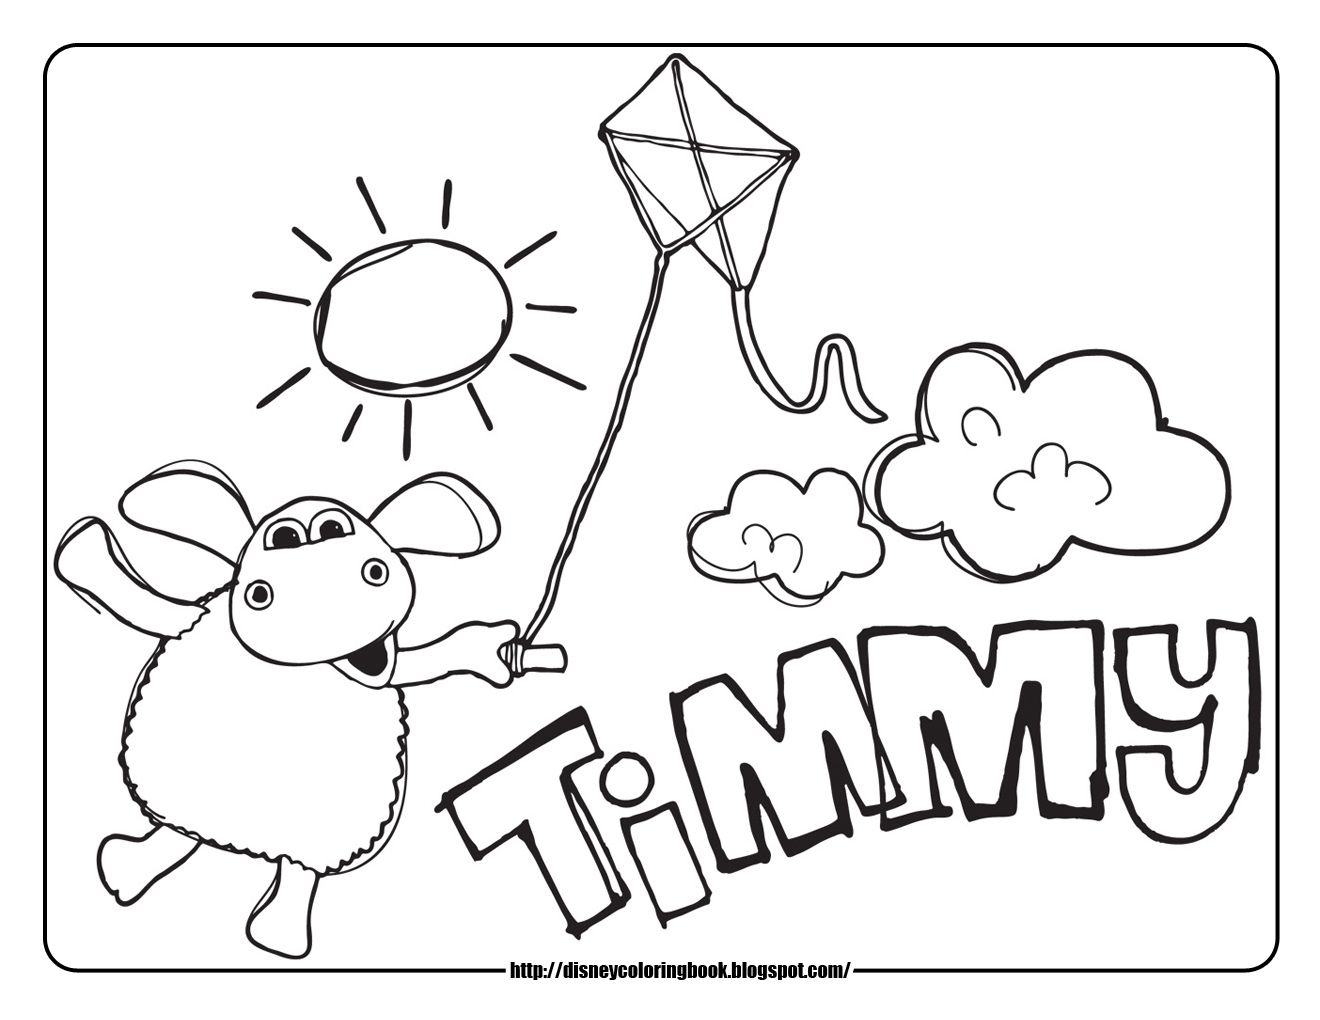 Timmy Time Coloring Pages Party Ideas Coloring Pages Disney